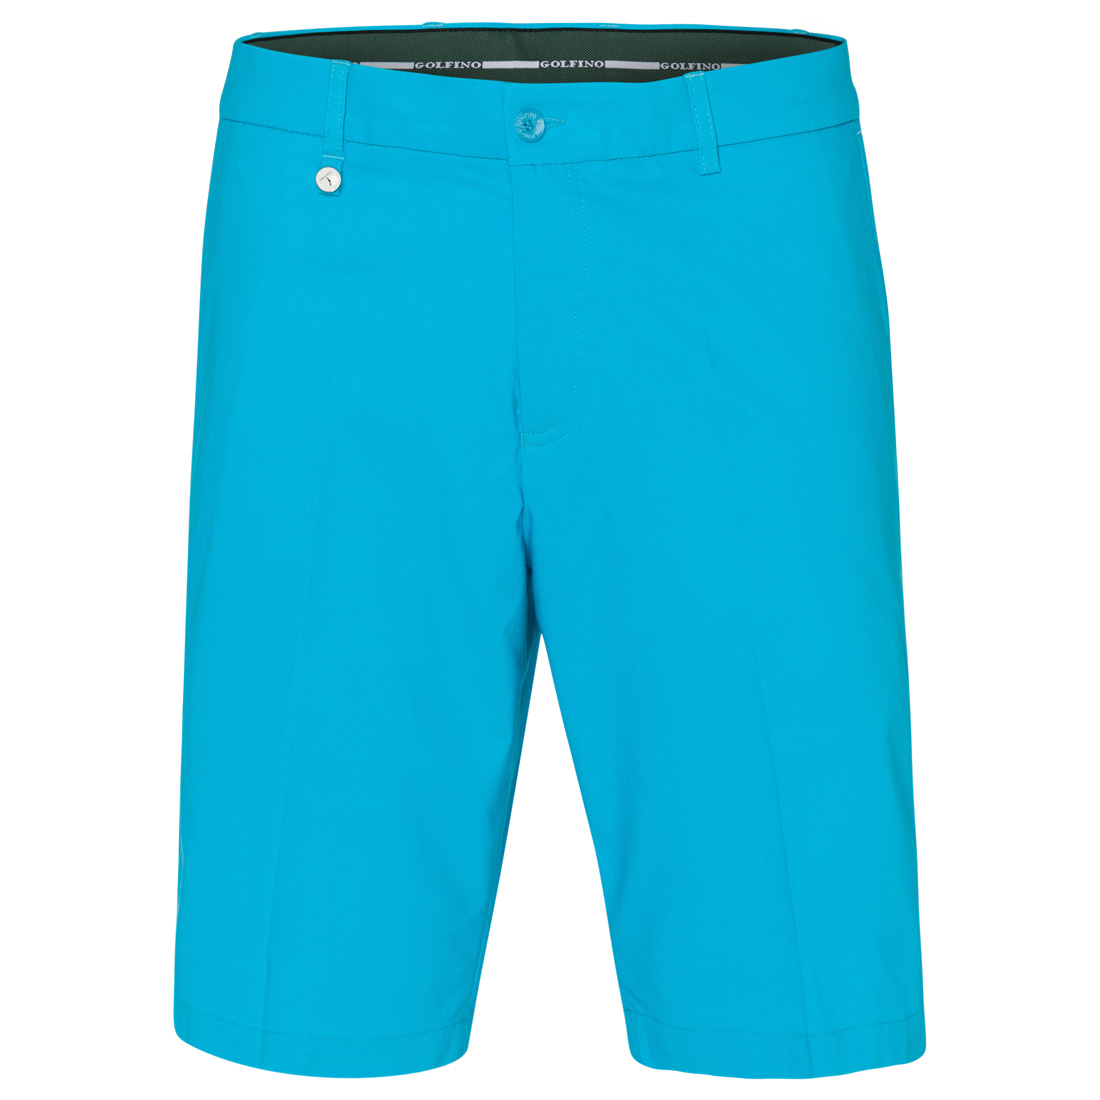 Techno Stretch Bermuda - Flat Front